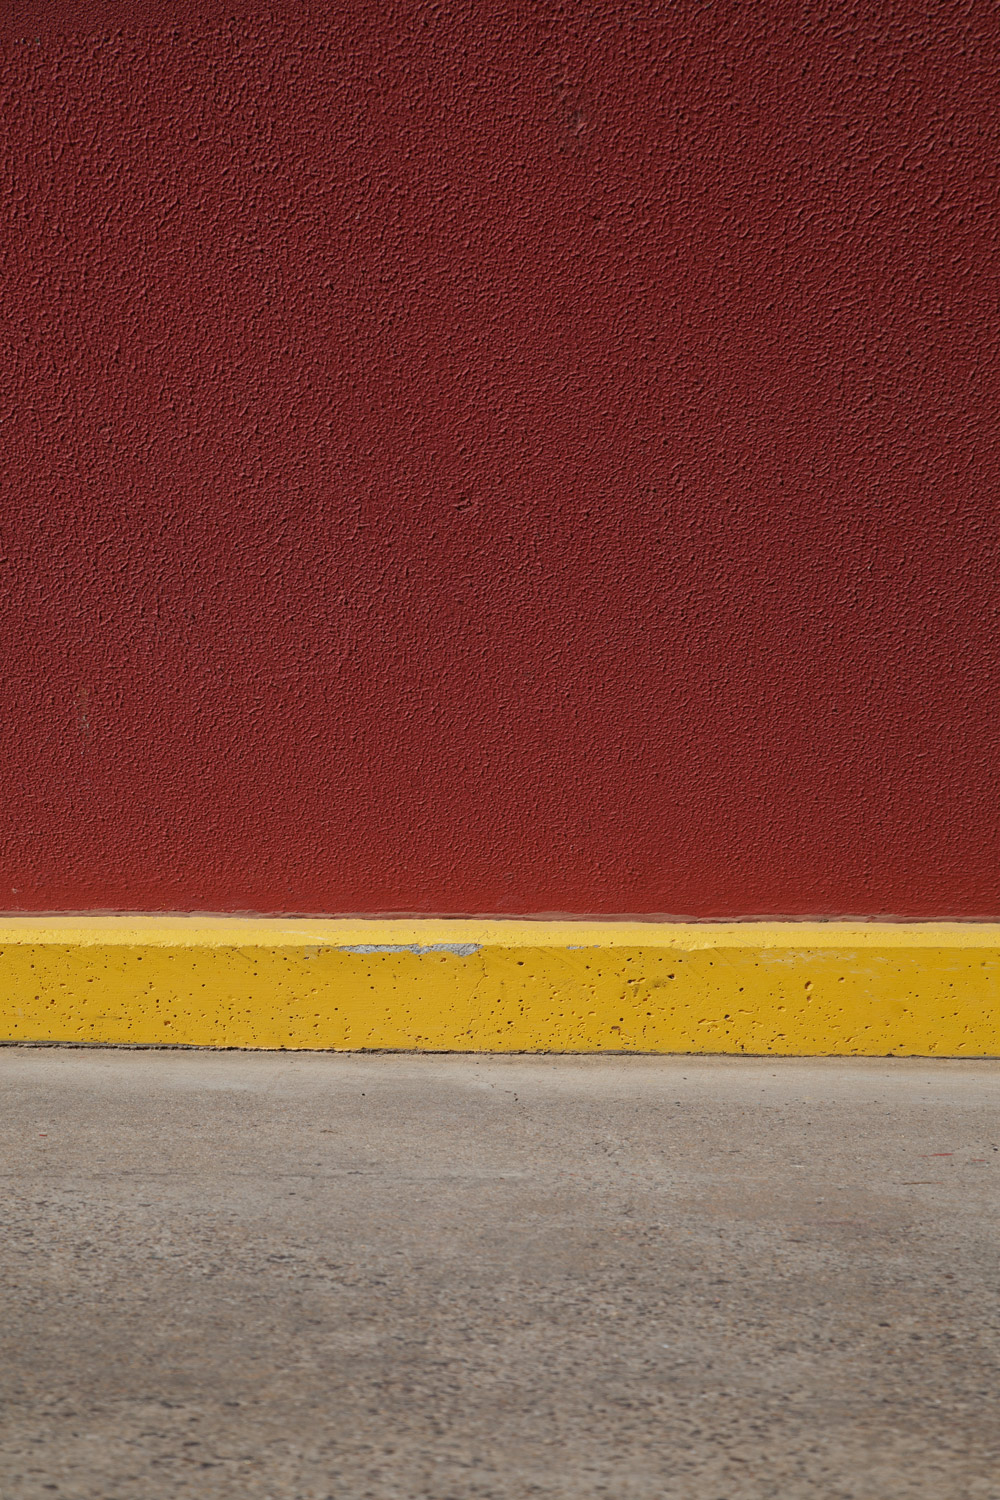 Image: The color in this image breaks up space, conveying meaning through our inherent associations